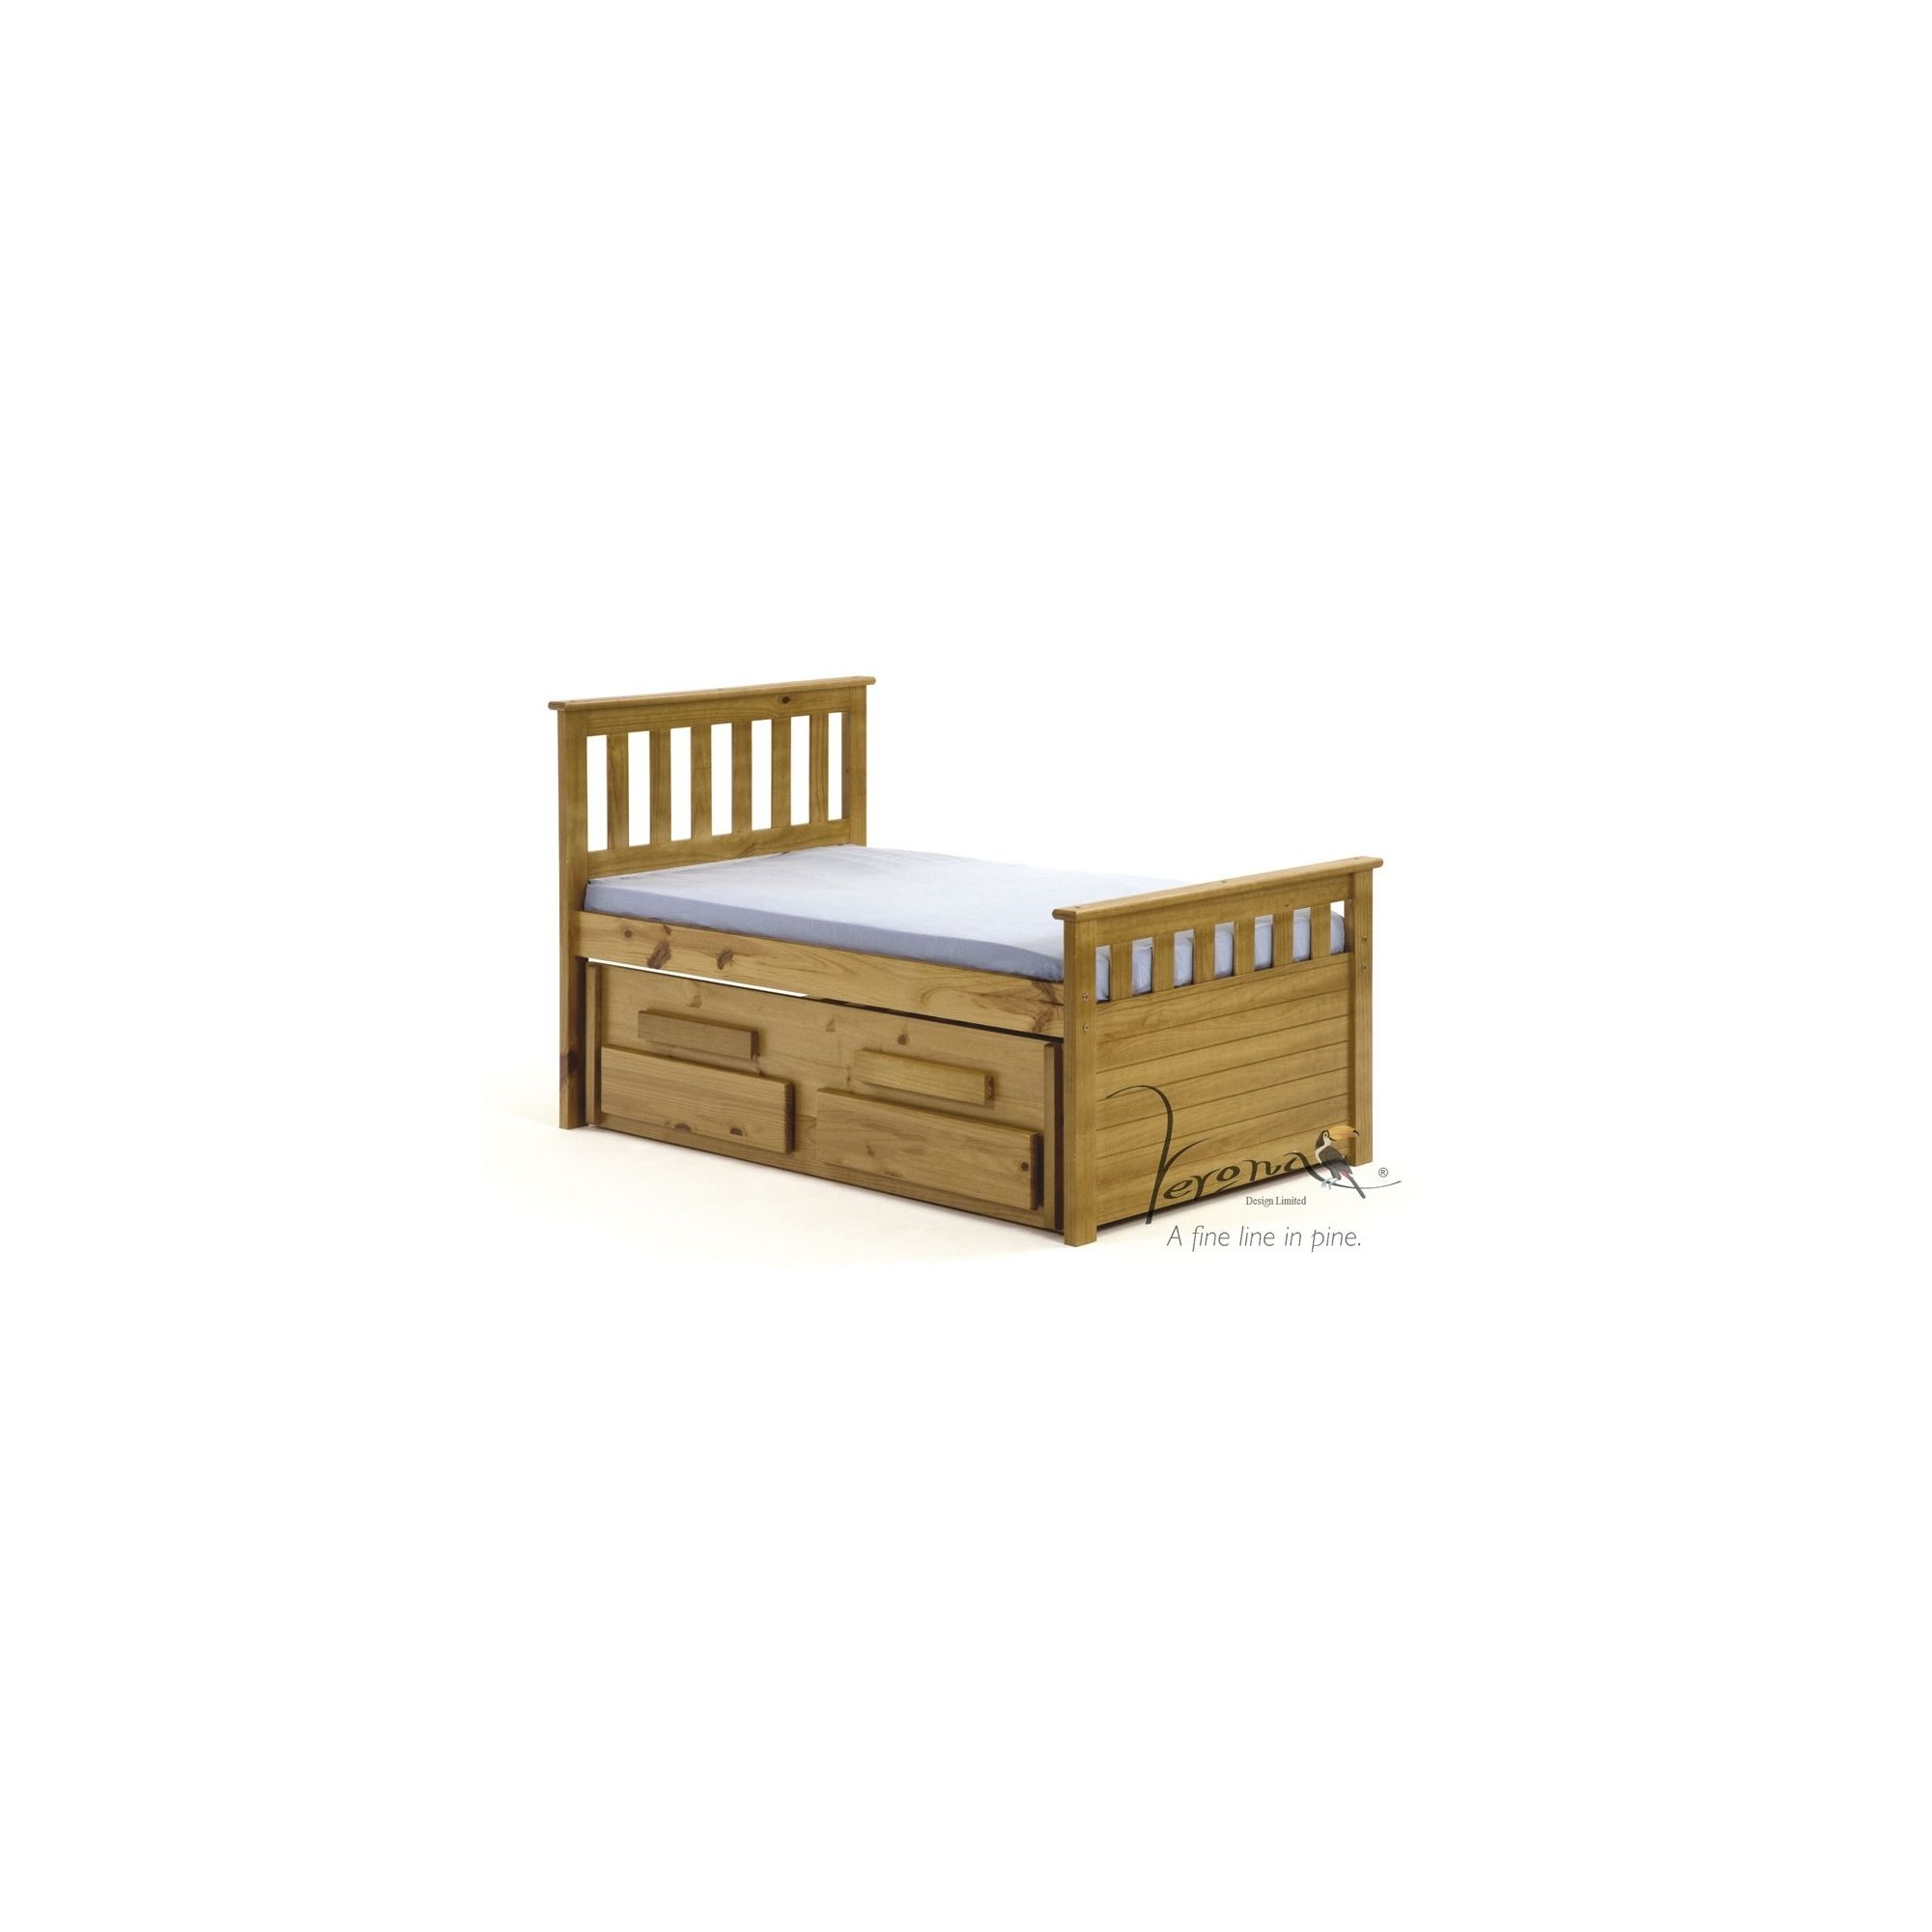 Verona Bergamo Kids Captains Bed with guest bed - Antique at Tesco Direct